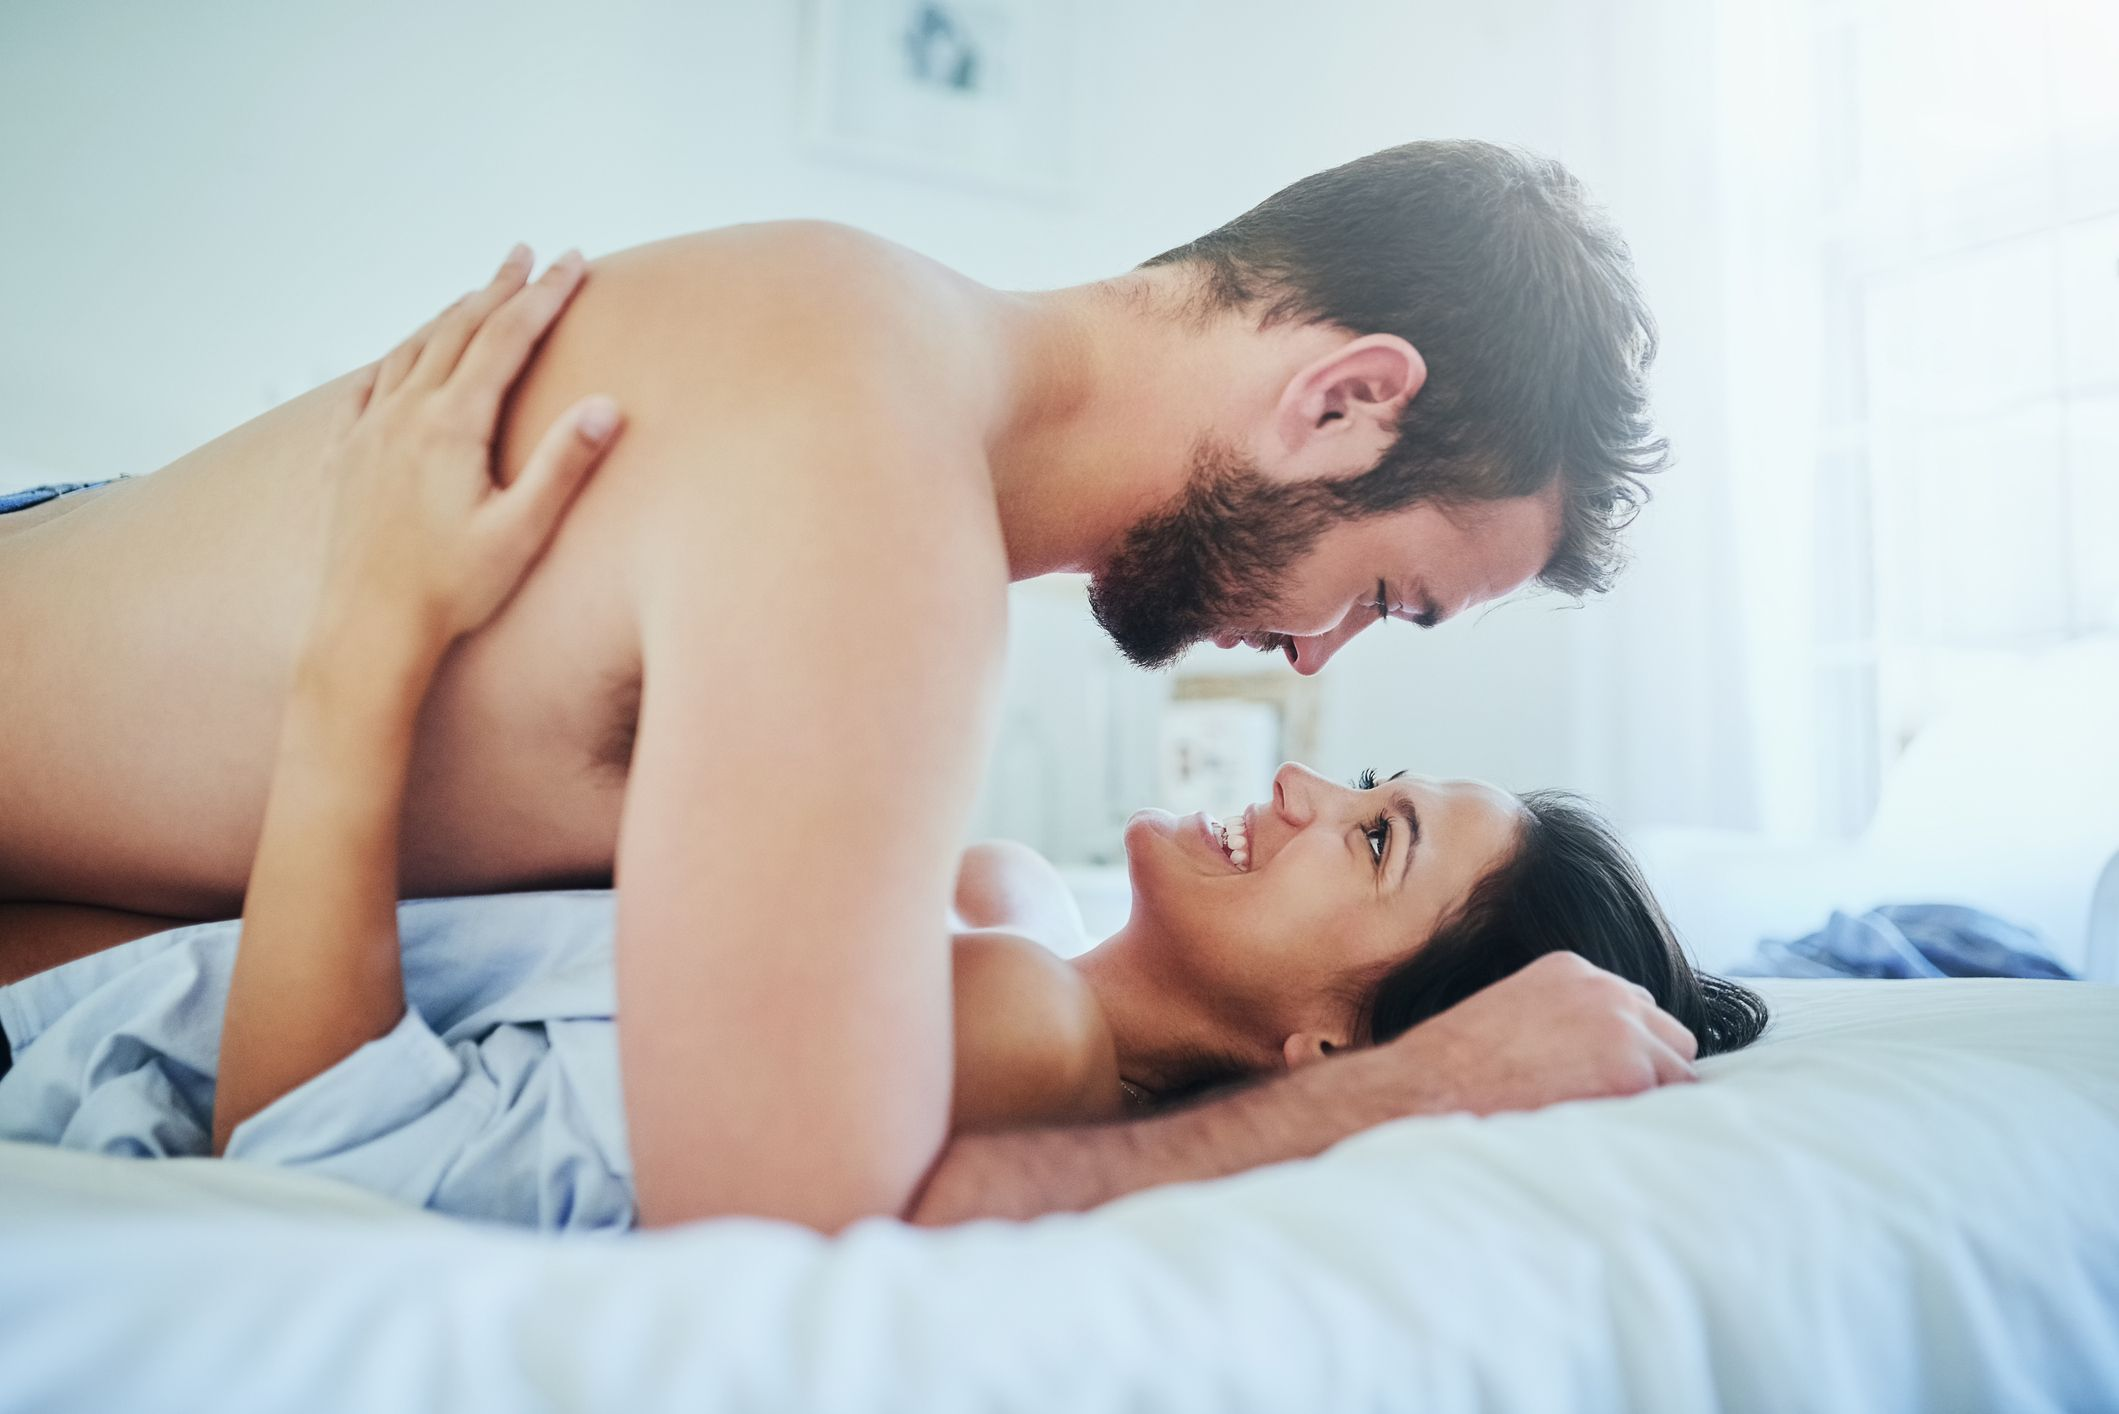 Common mistakes men make during oral sex